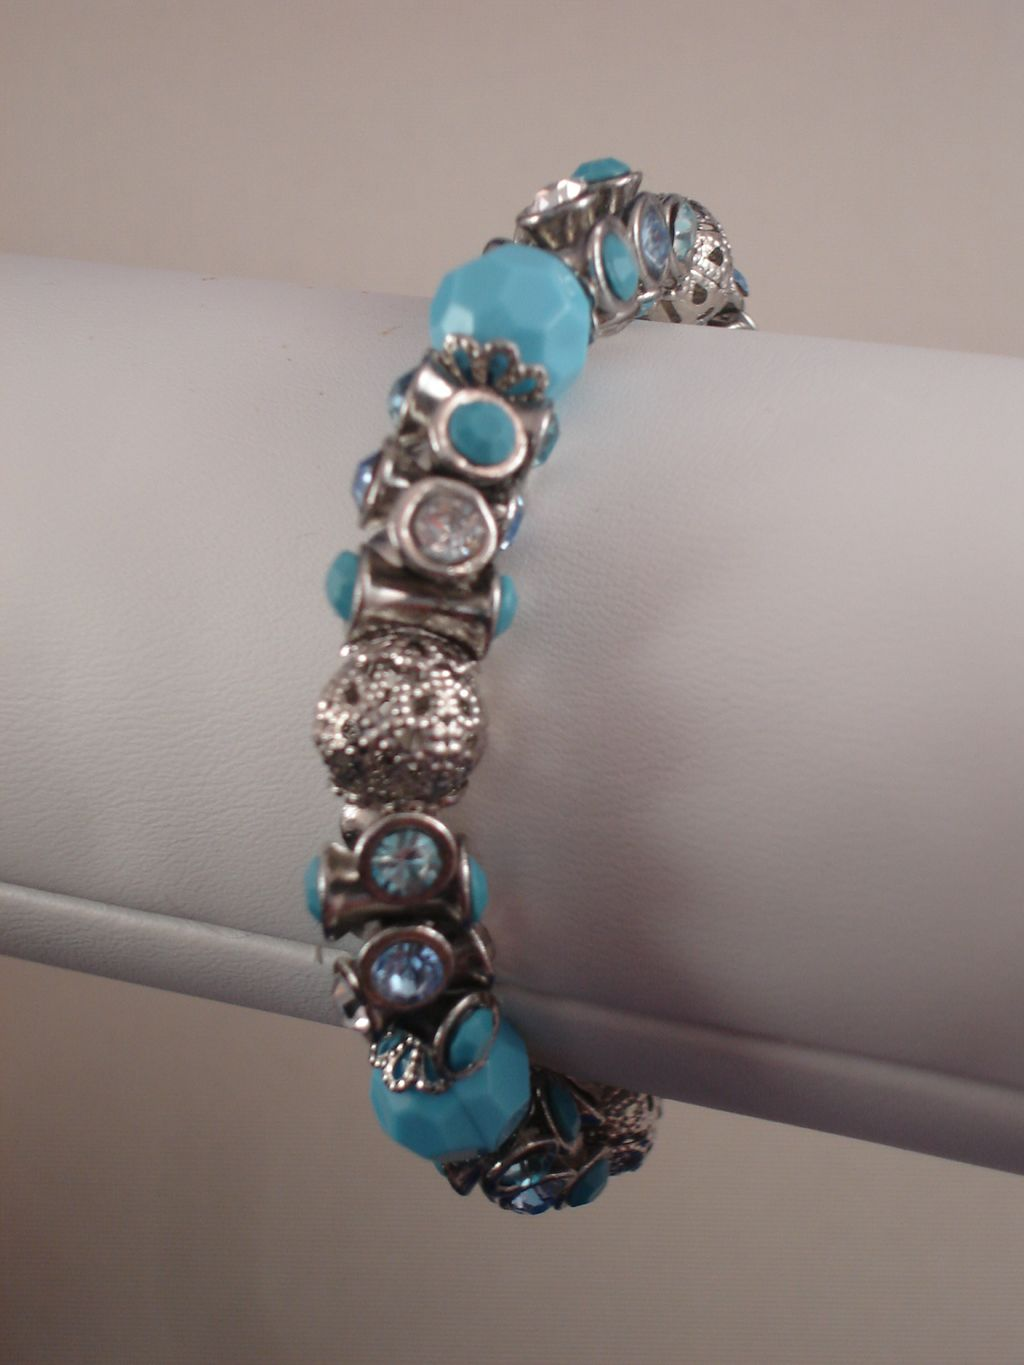 Sky Blue Stretching Braclet, Metal & Vinyl Beads, Genuine CZ Stones, Anti-allergic Jewelry